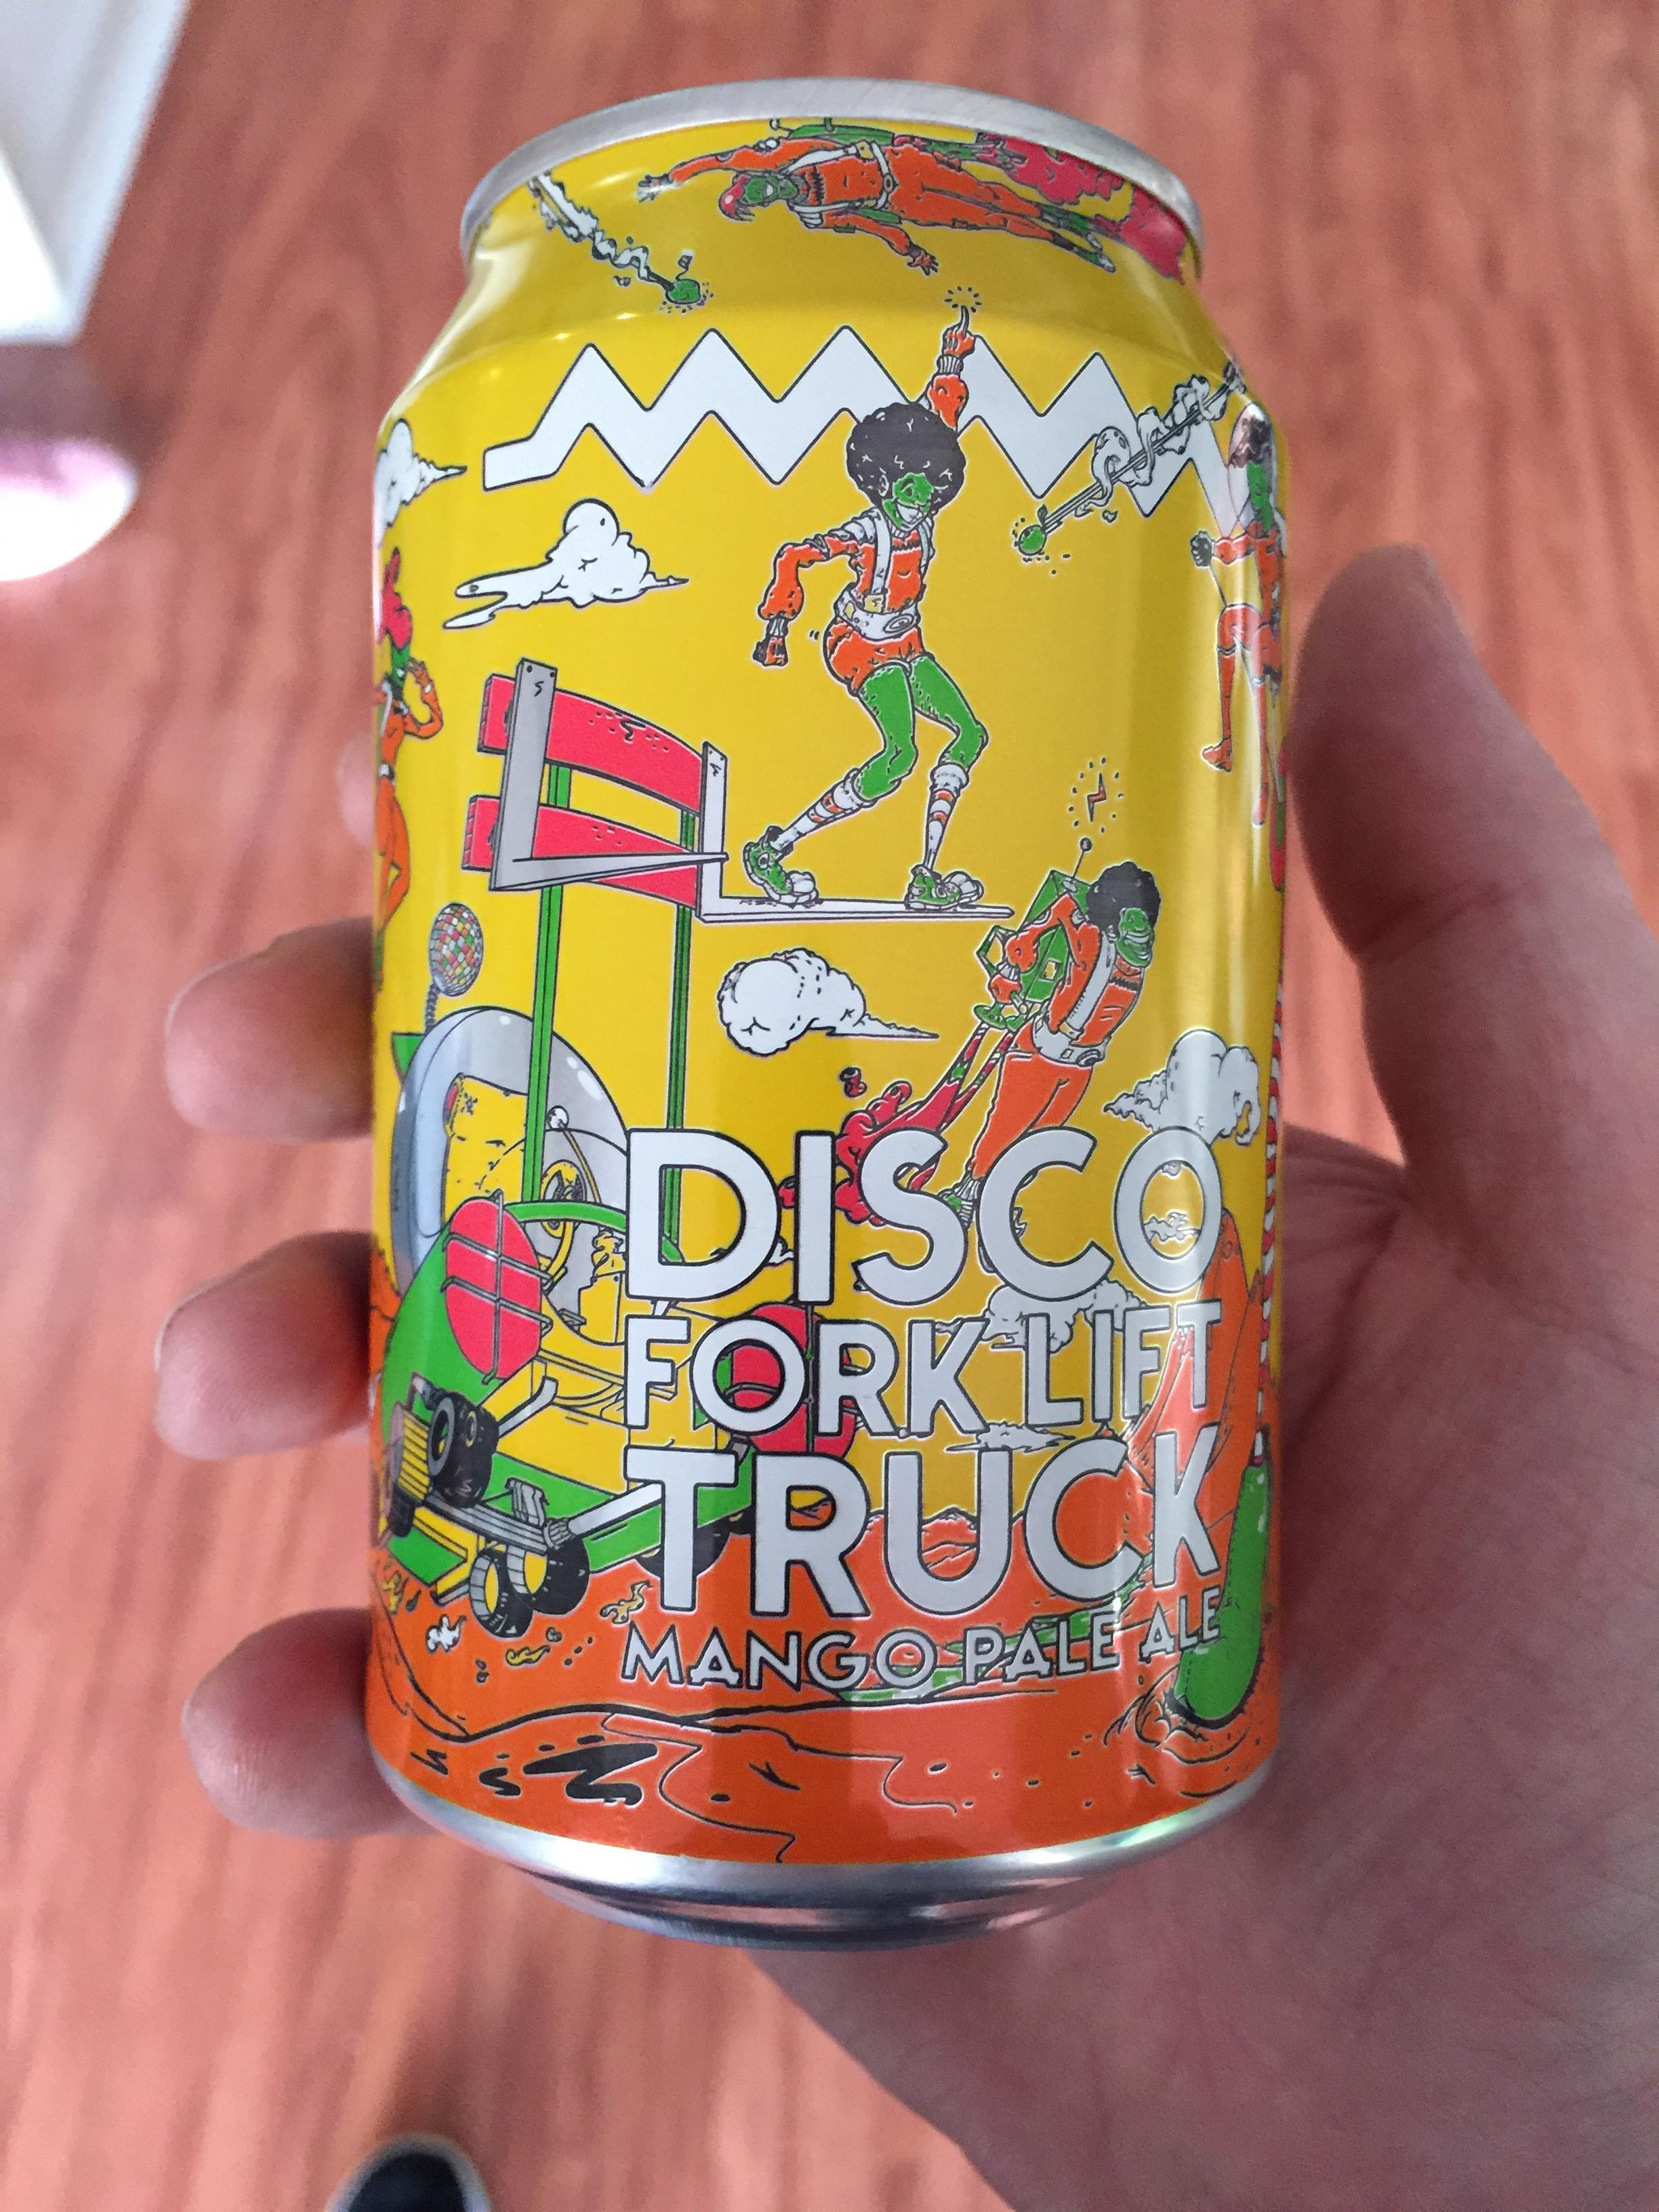 Read more about the article Disco Forklift Truck Mango Pale Ale